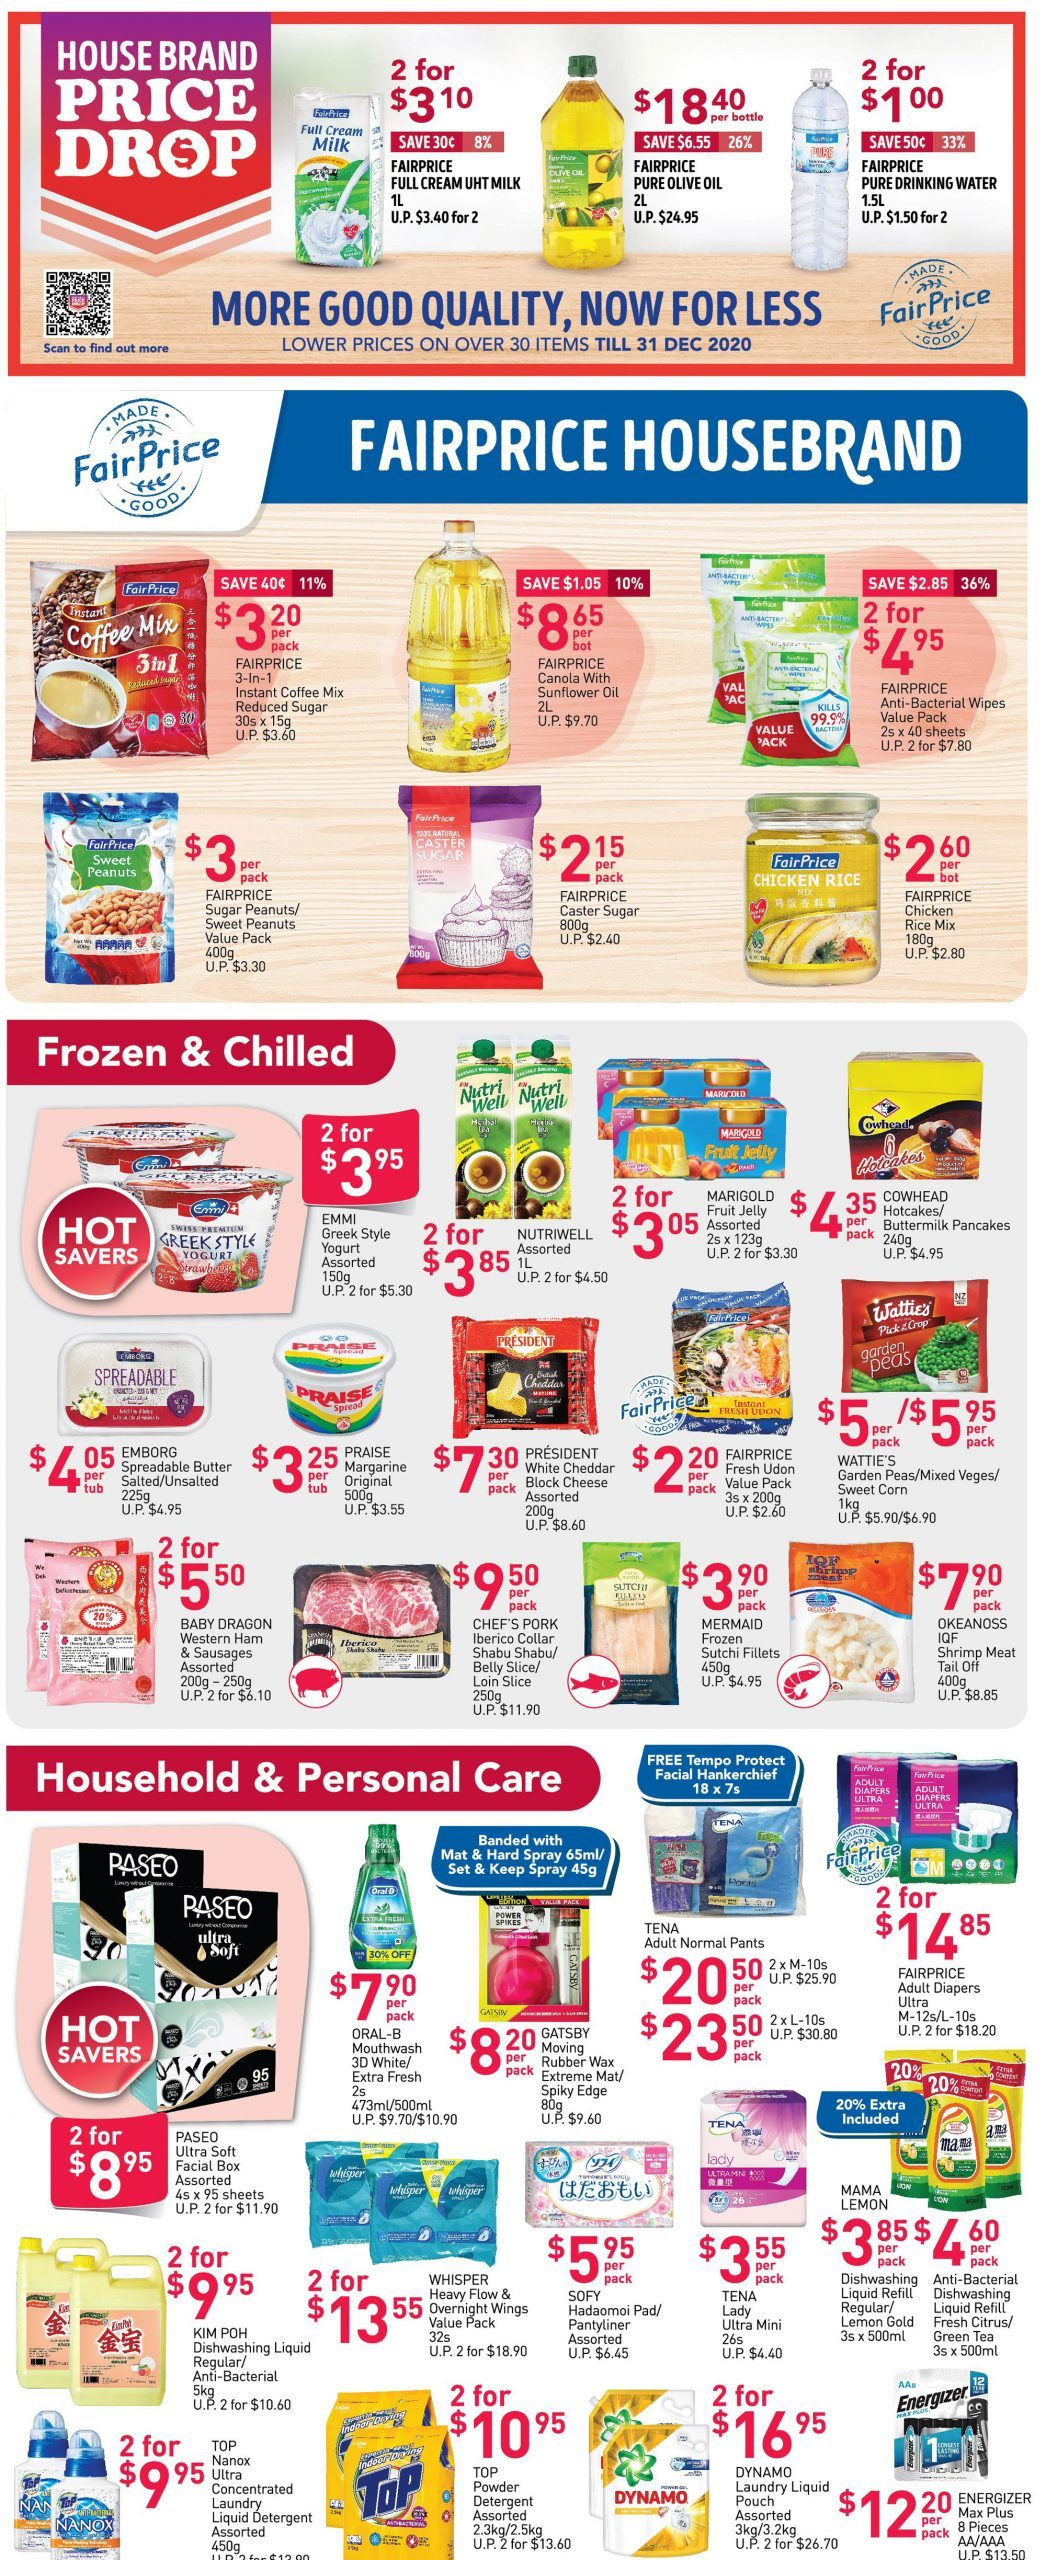 FairPrice's weekly saver deals till 14 October 2020